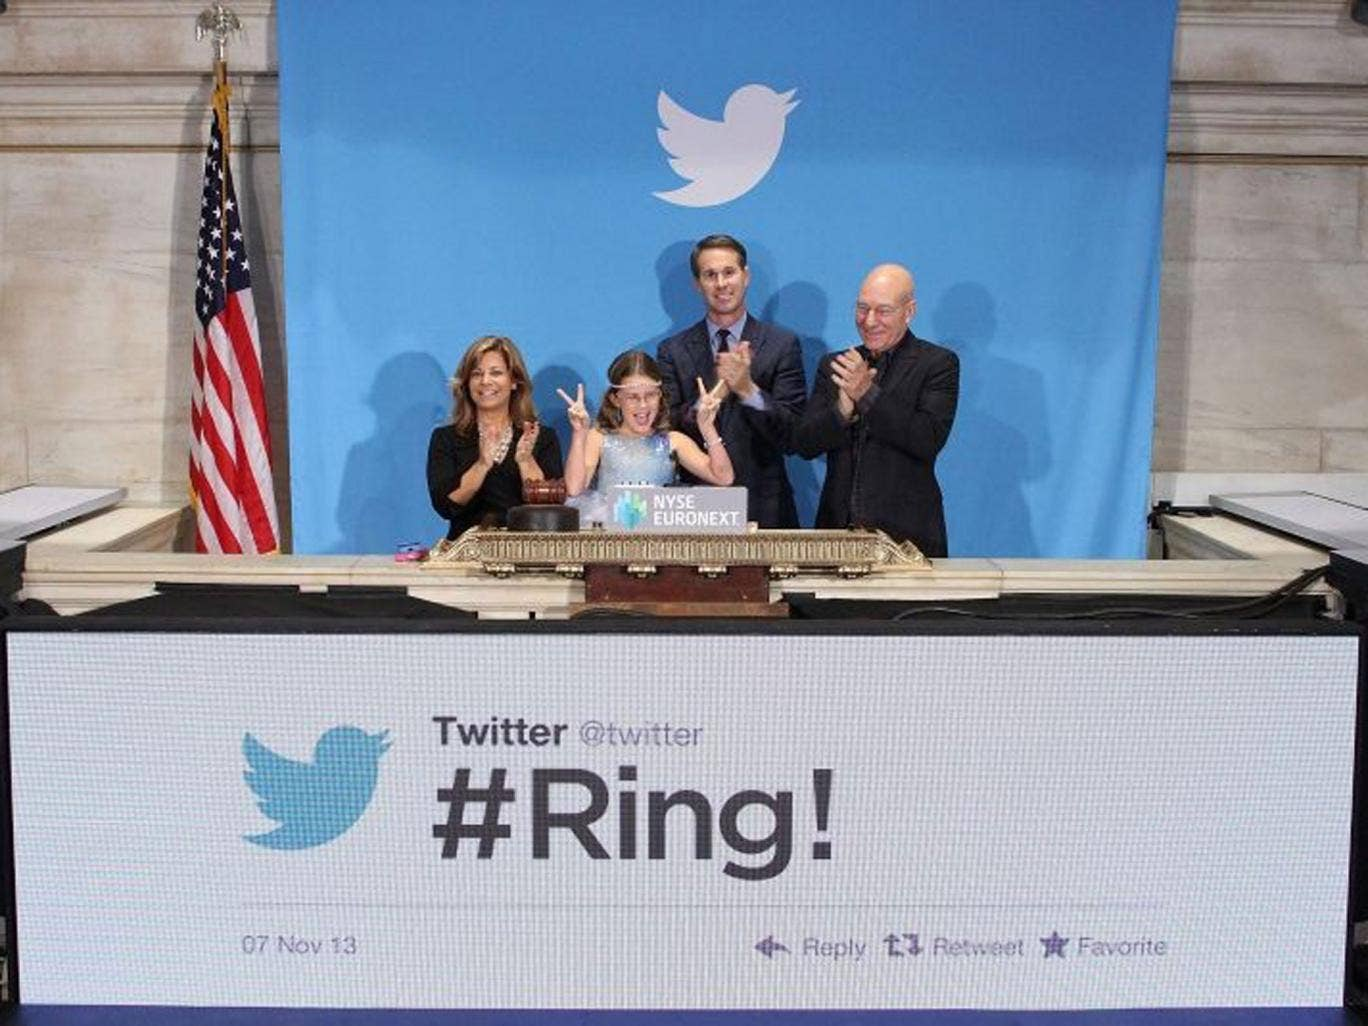 British actor Sir Patrick Stewart (R), flanked by Vivienne Harr (2-L), Boston police officer Cheryl Fiandaca (L) and Twitter co-founder Evan Williams (2-R) at the ringing of the opening bell to mark Twitter's highly anticipated initial public offering (IP